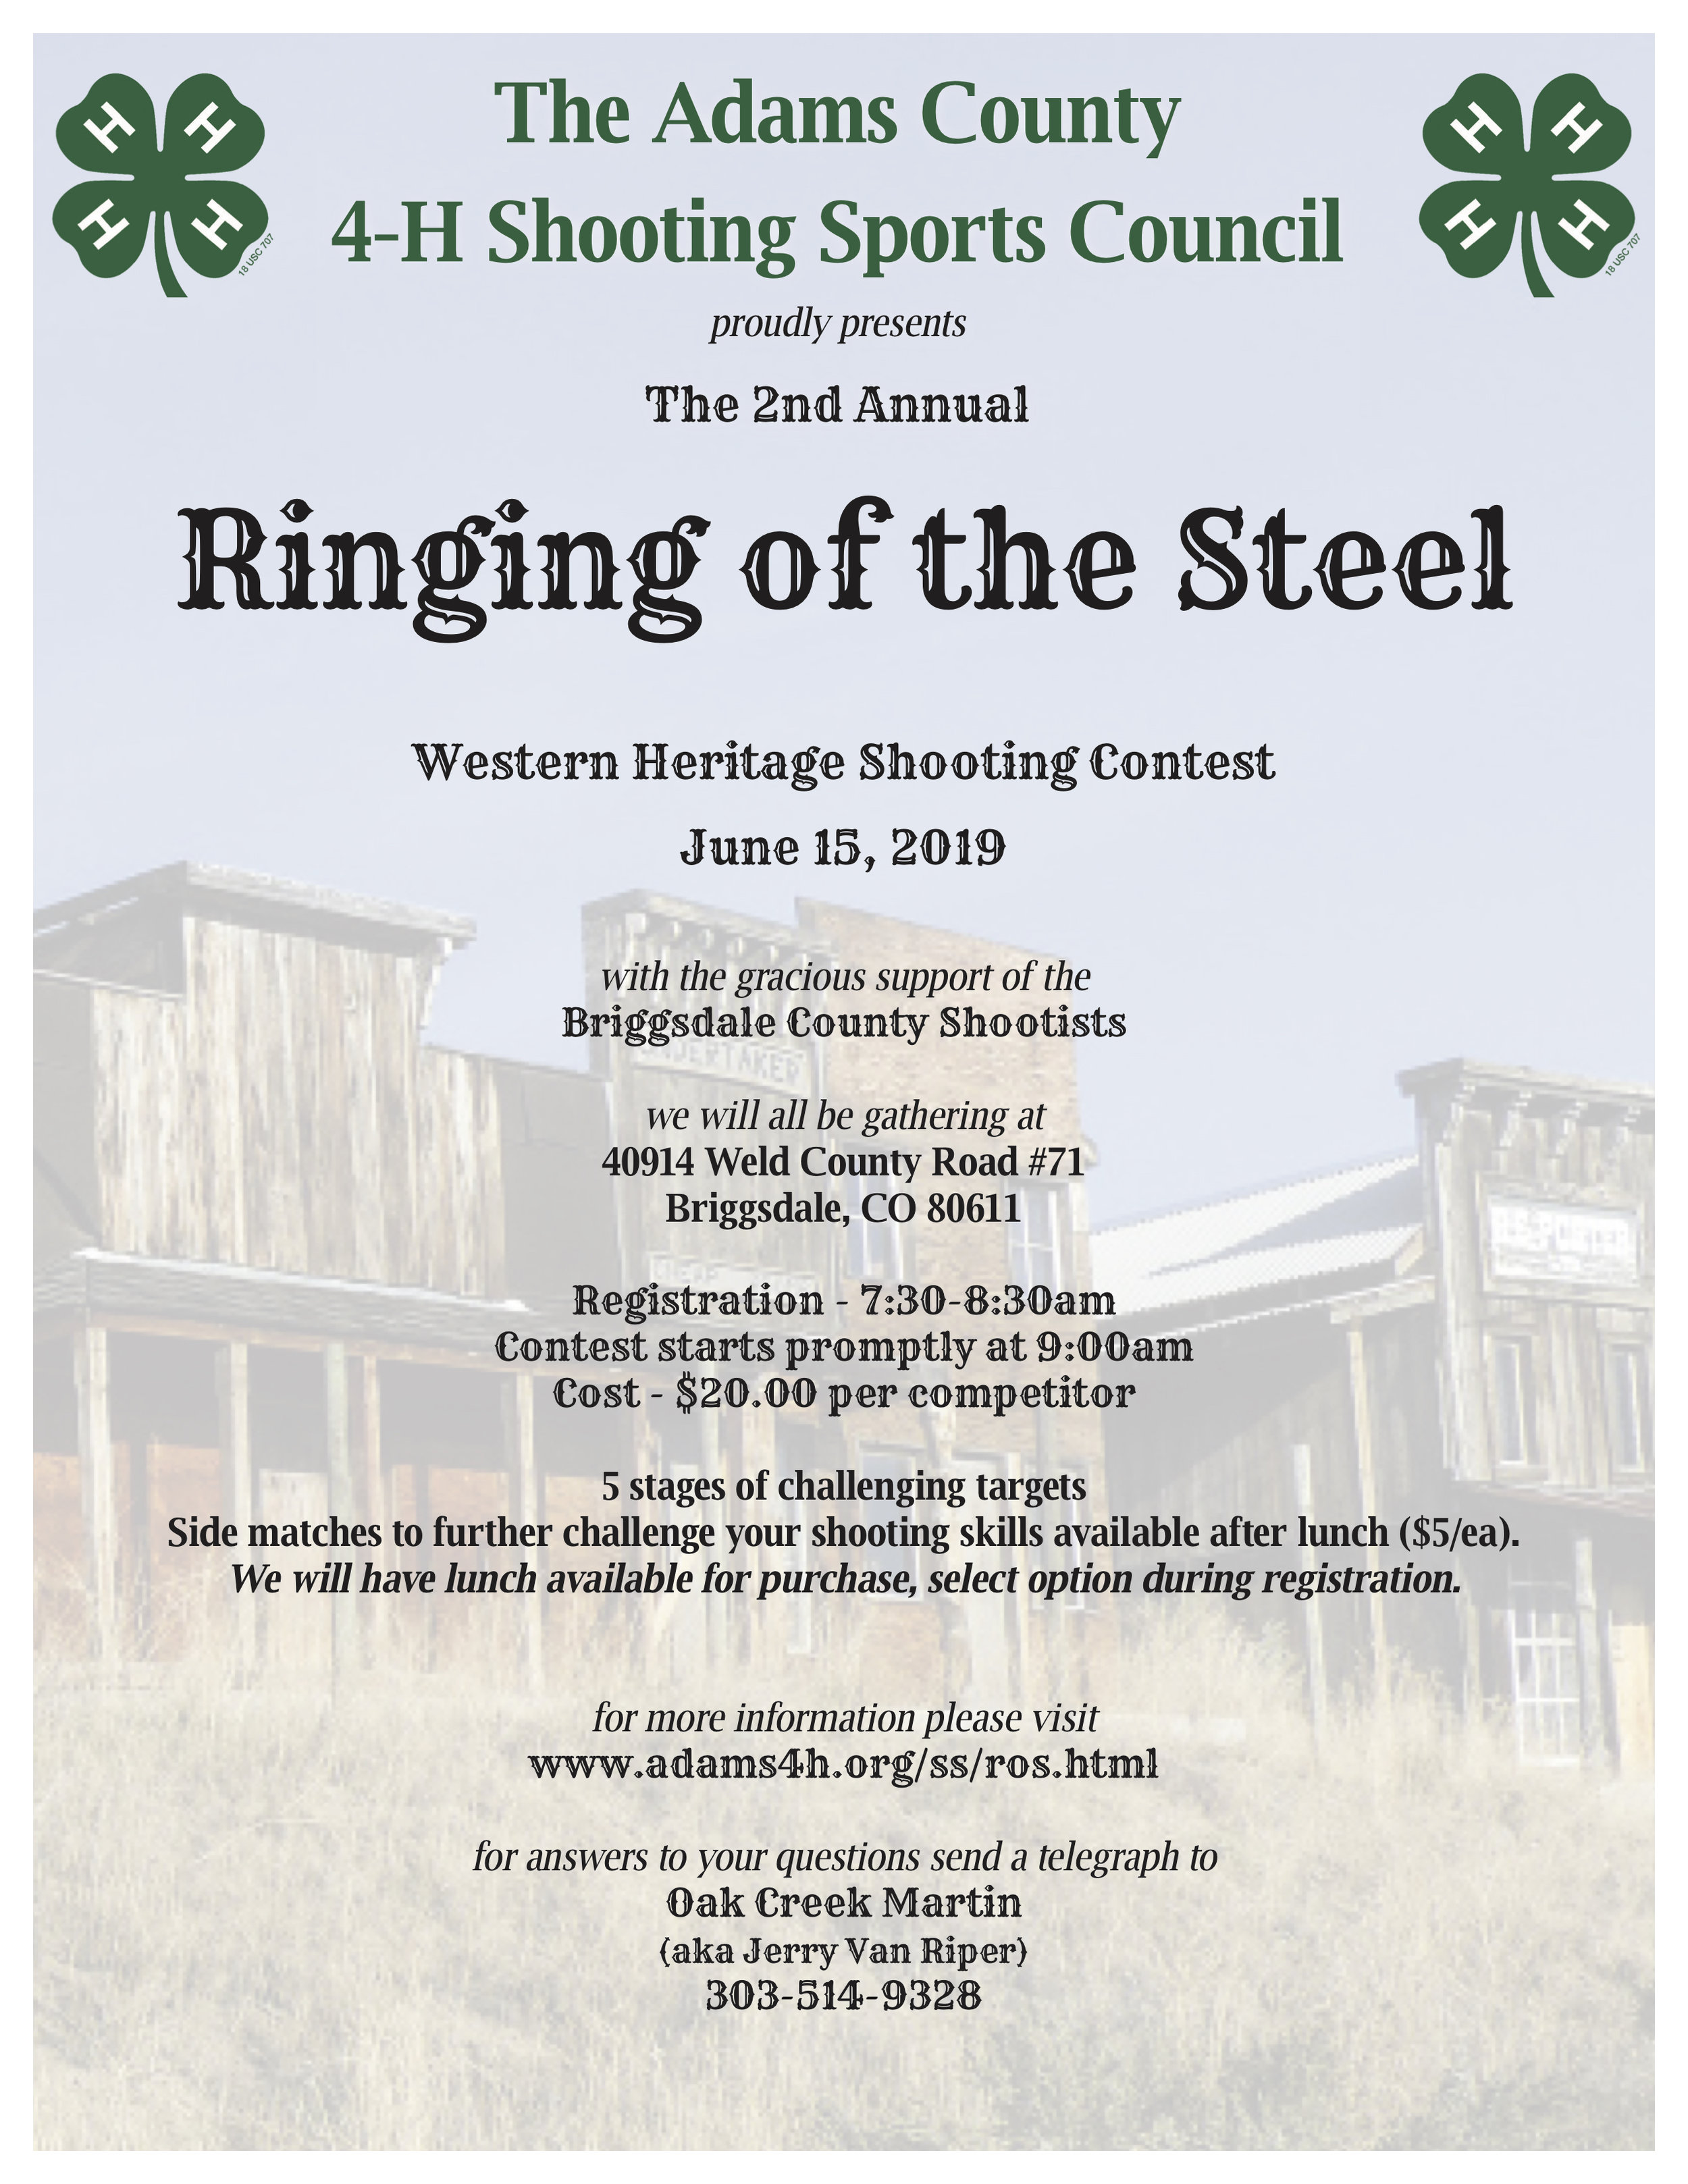 Ringing-of-the-Steel-Flyer-2019.jpg